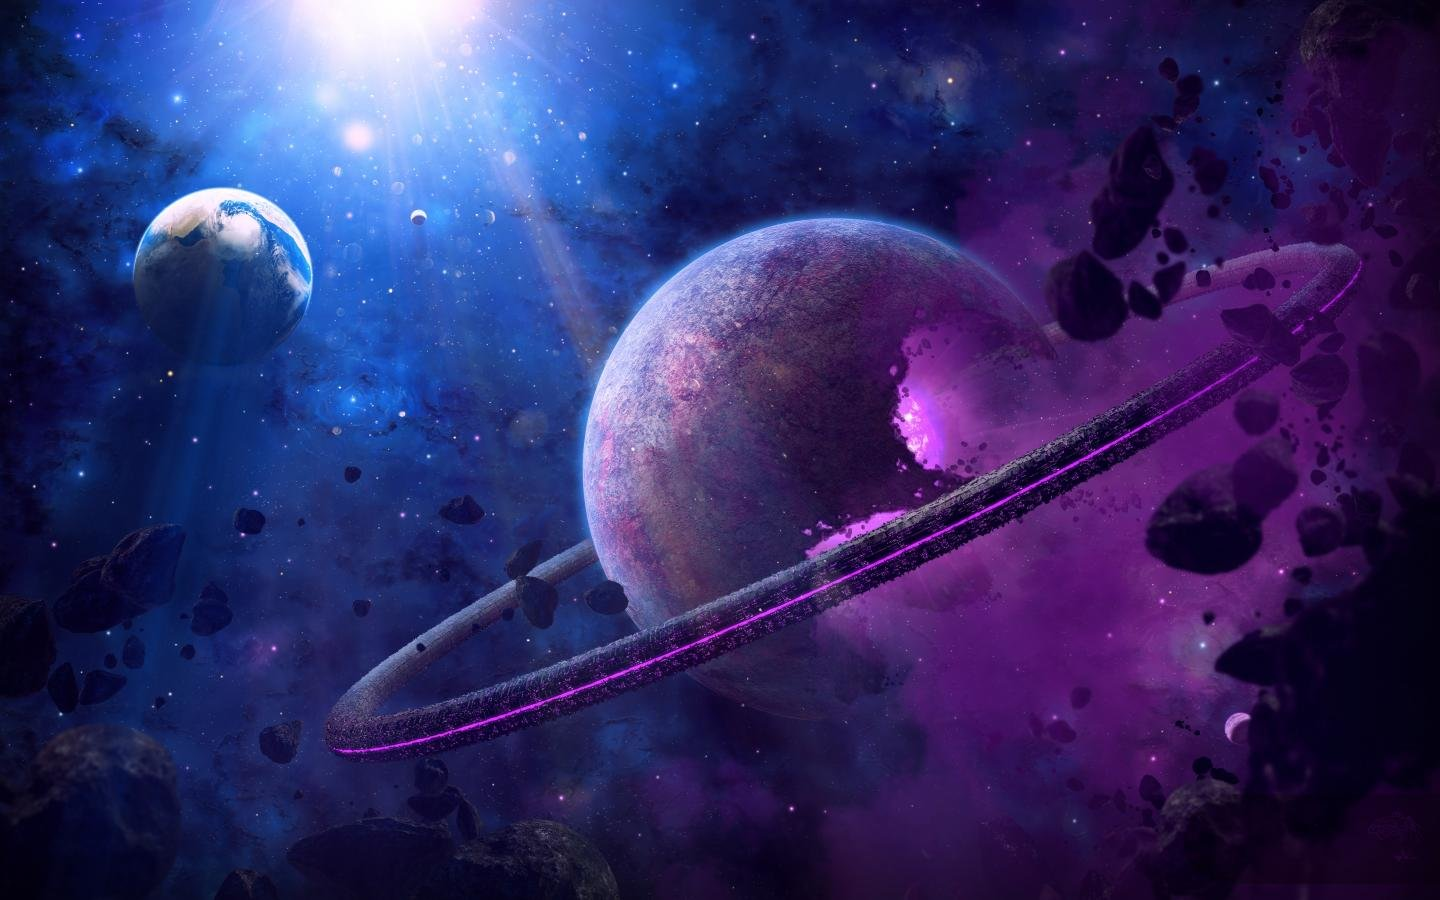 Space wallpapers 1440x900 desktop backgrounds - Cool space wallpapers ...